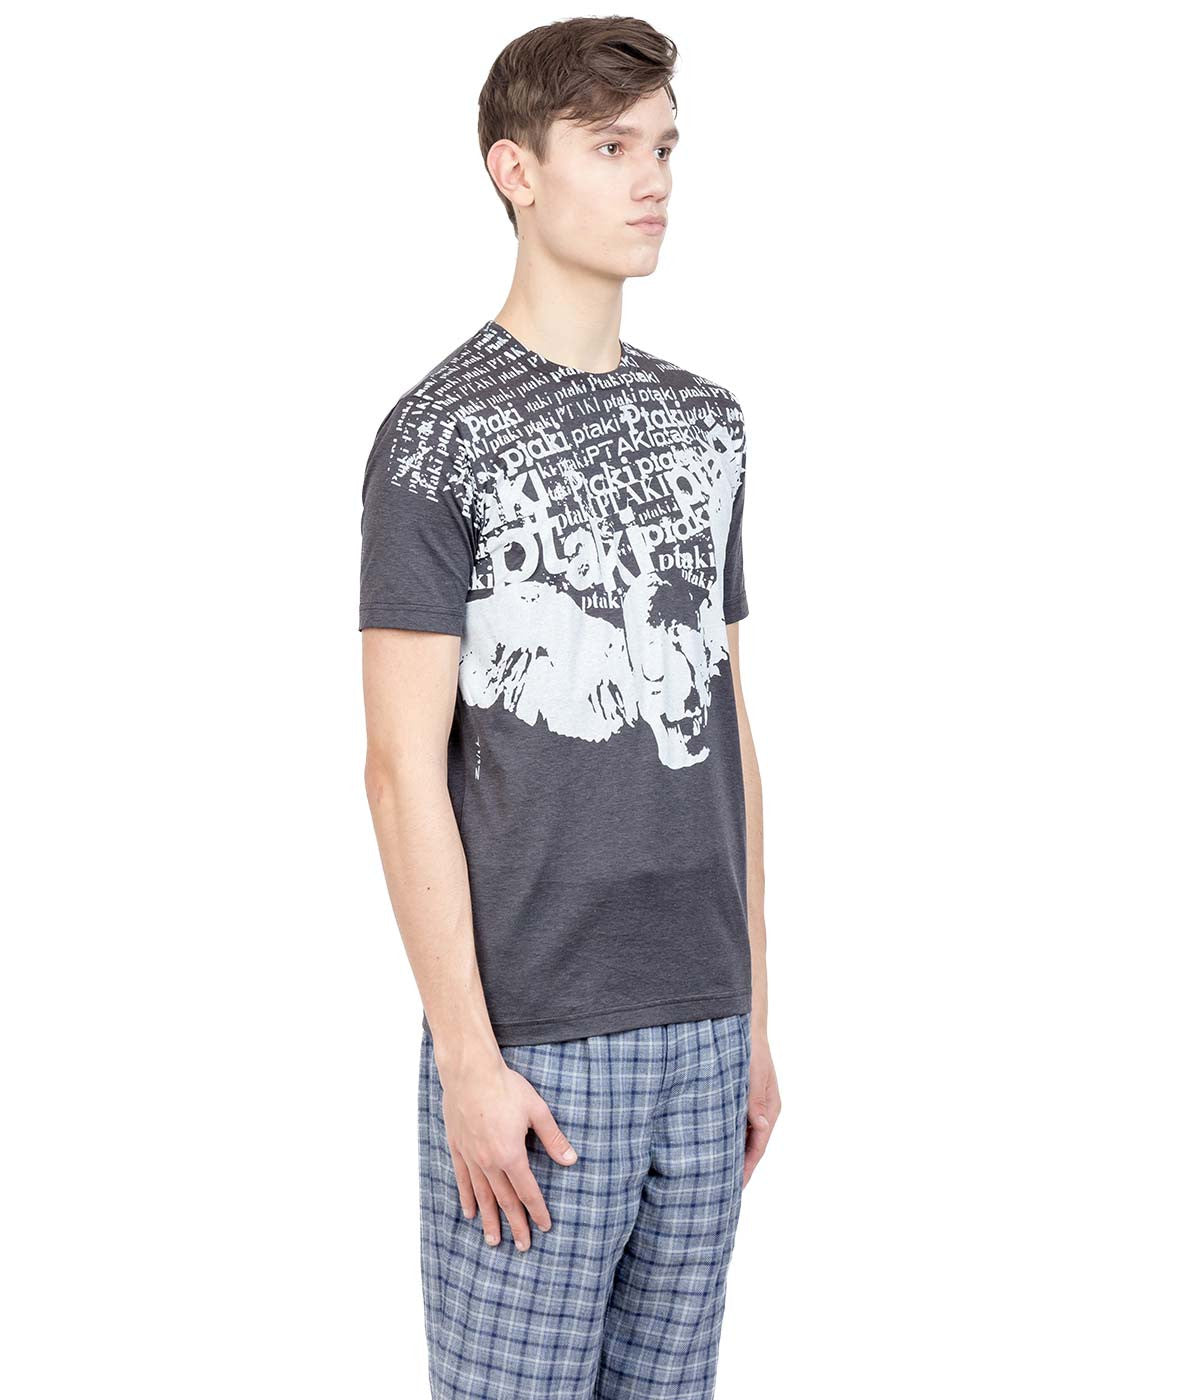 Charcoal Grey Graphic T-Shirt